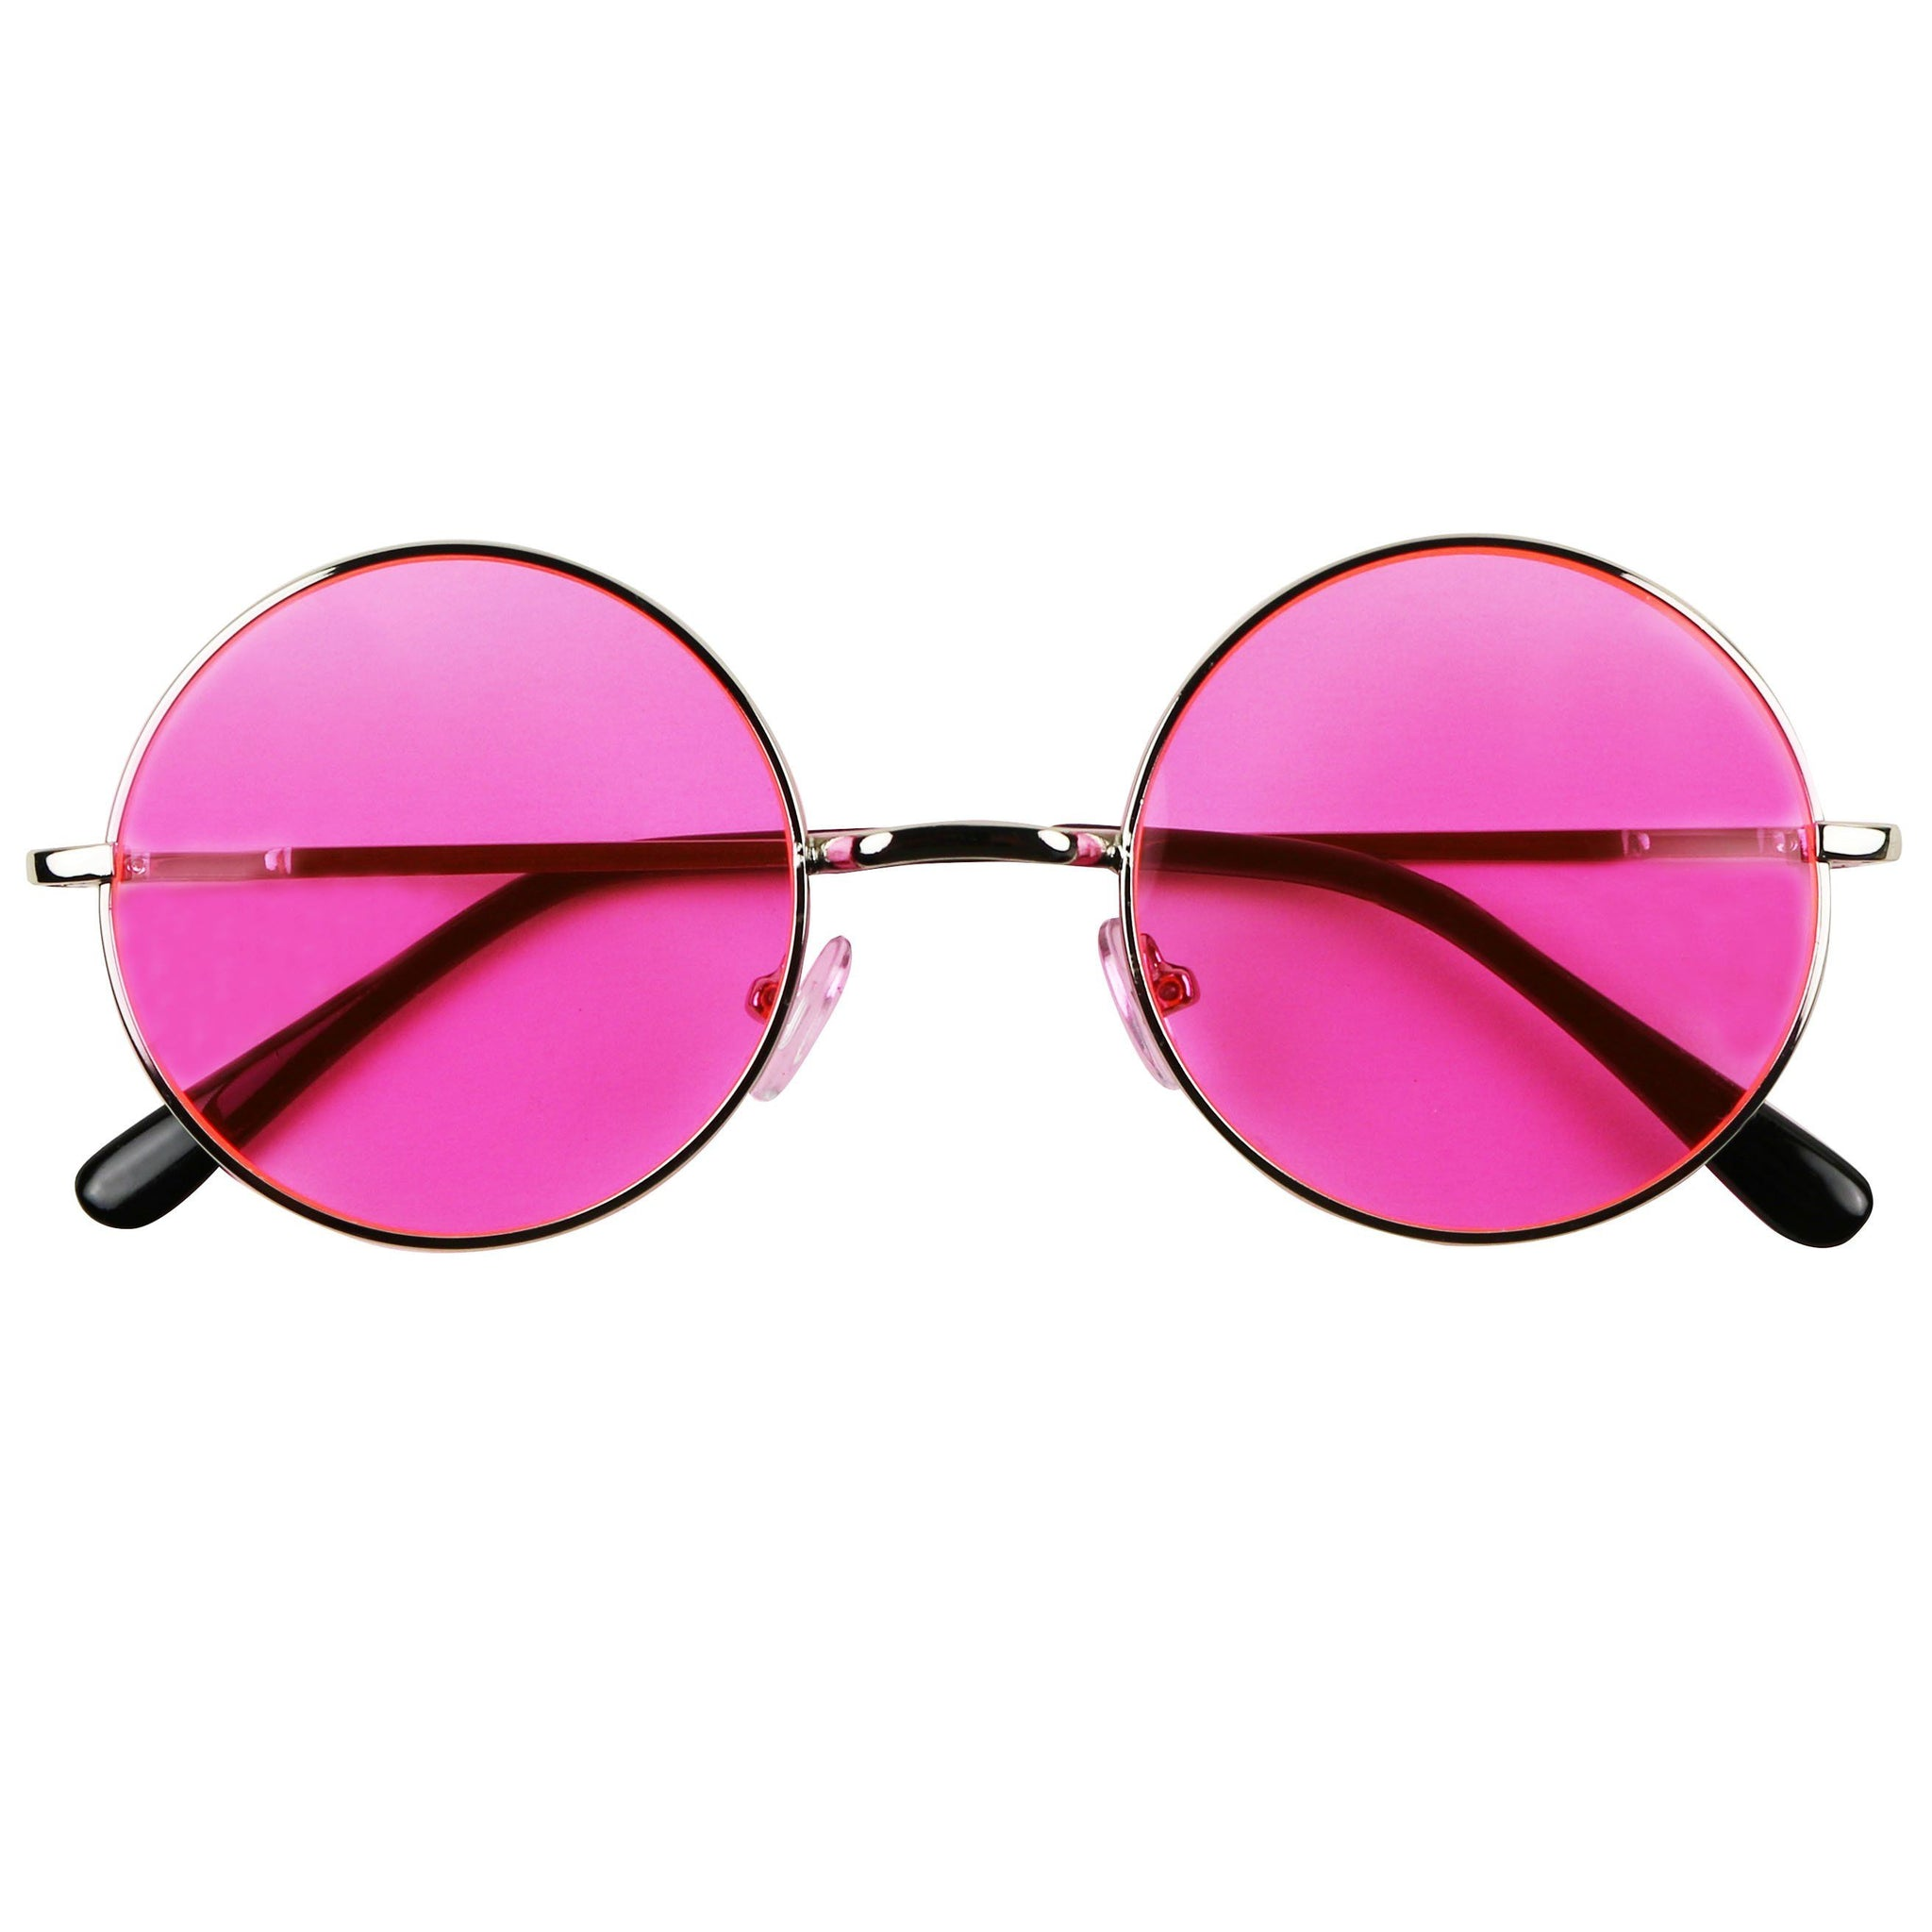 LENY Round Small Colorful Tinted Lens Lennon Inspired Sunglasses - ShadyVEU